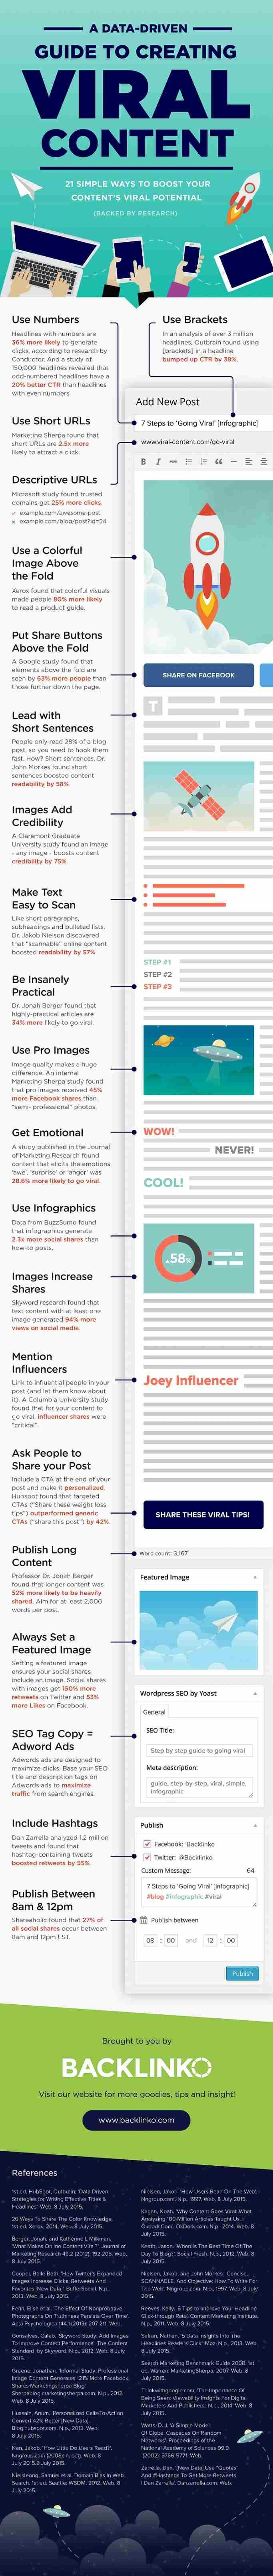 Excellent tips on tailoring your content to being shareable and engaging!